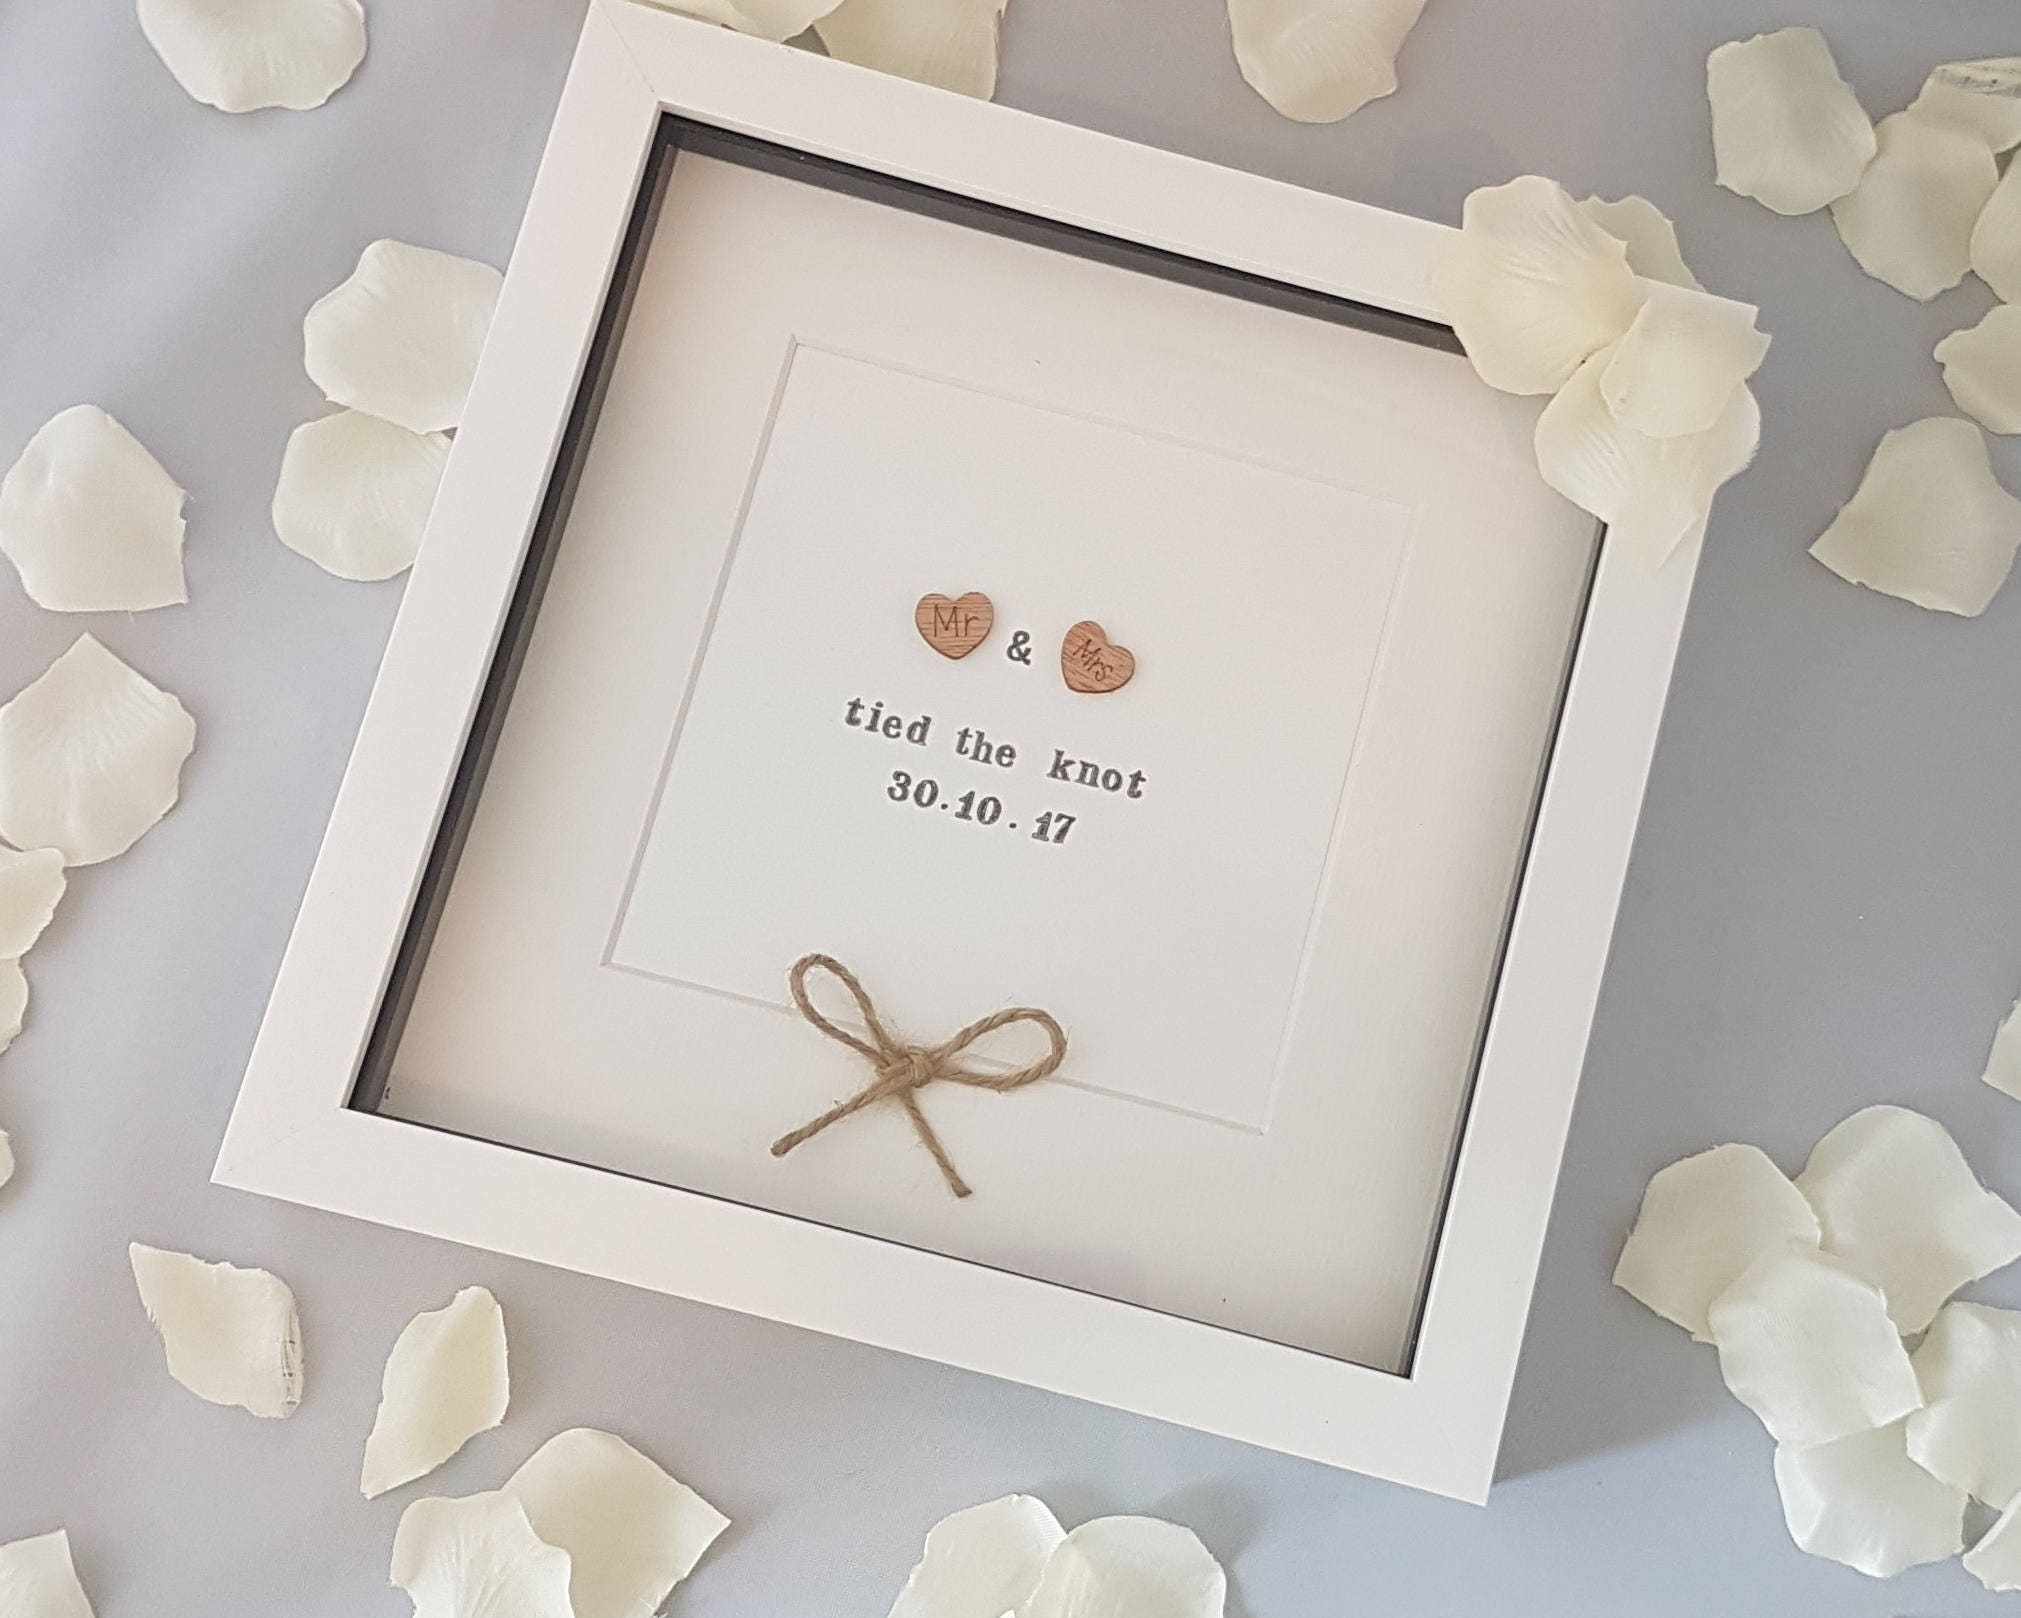 The Knot Wedding Gifts: Mr & Mrs Tied The Knot Wedding Gift Wedding Frame